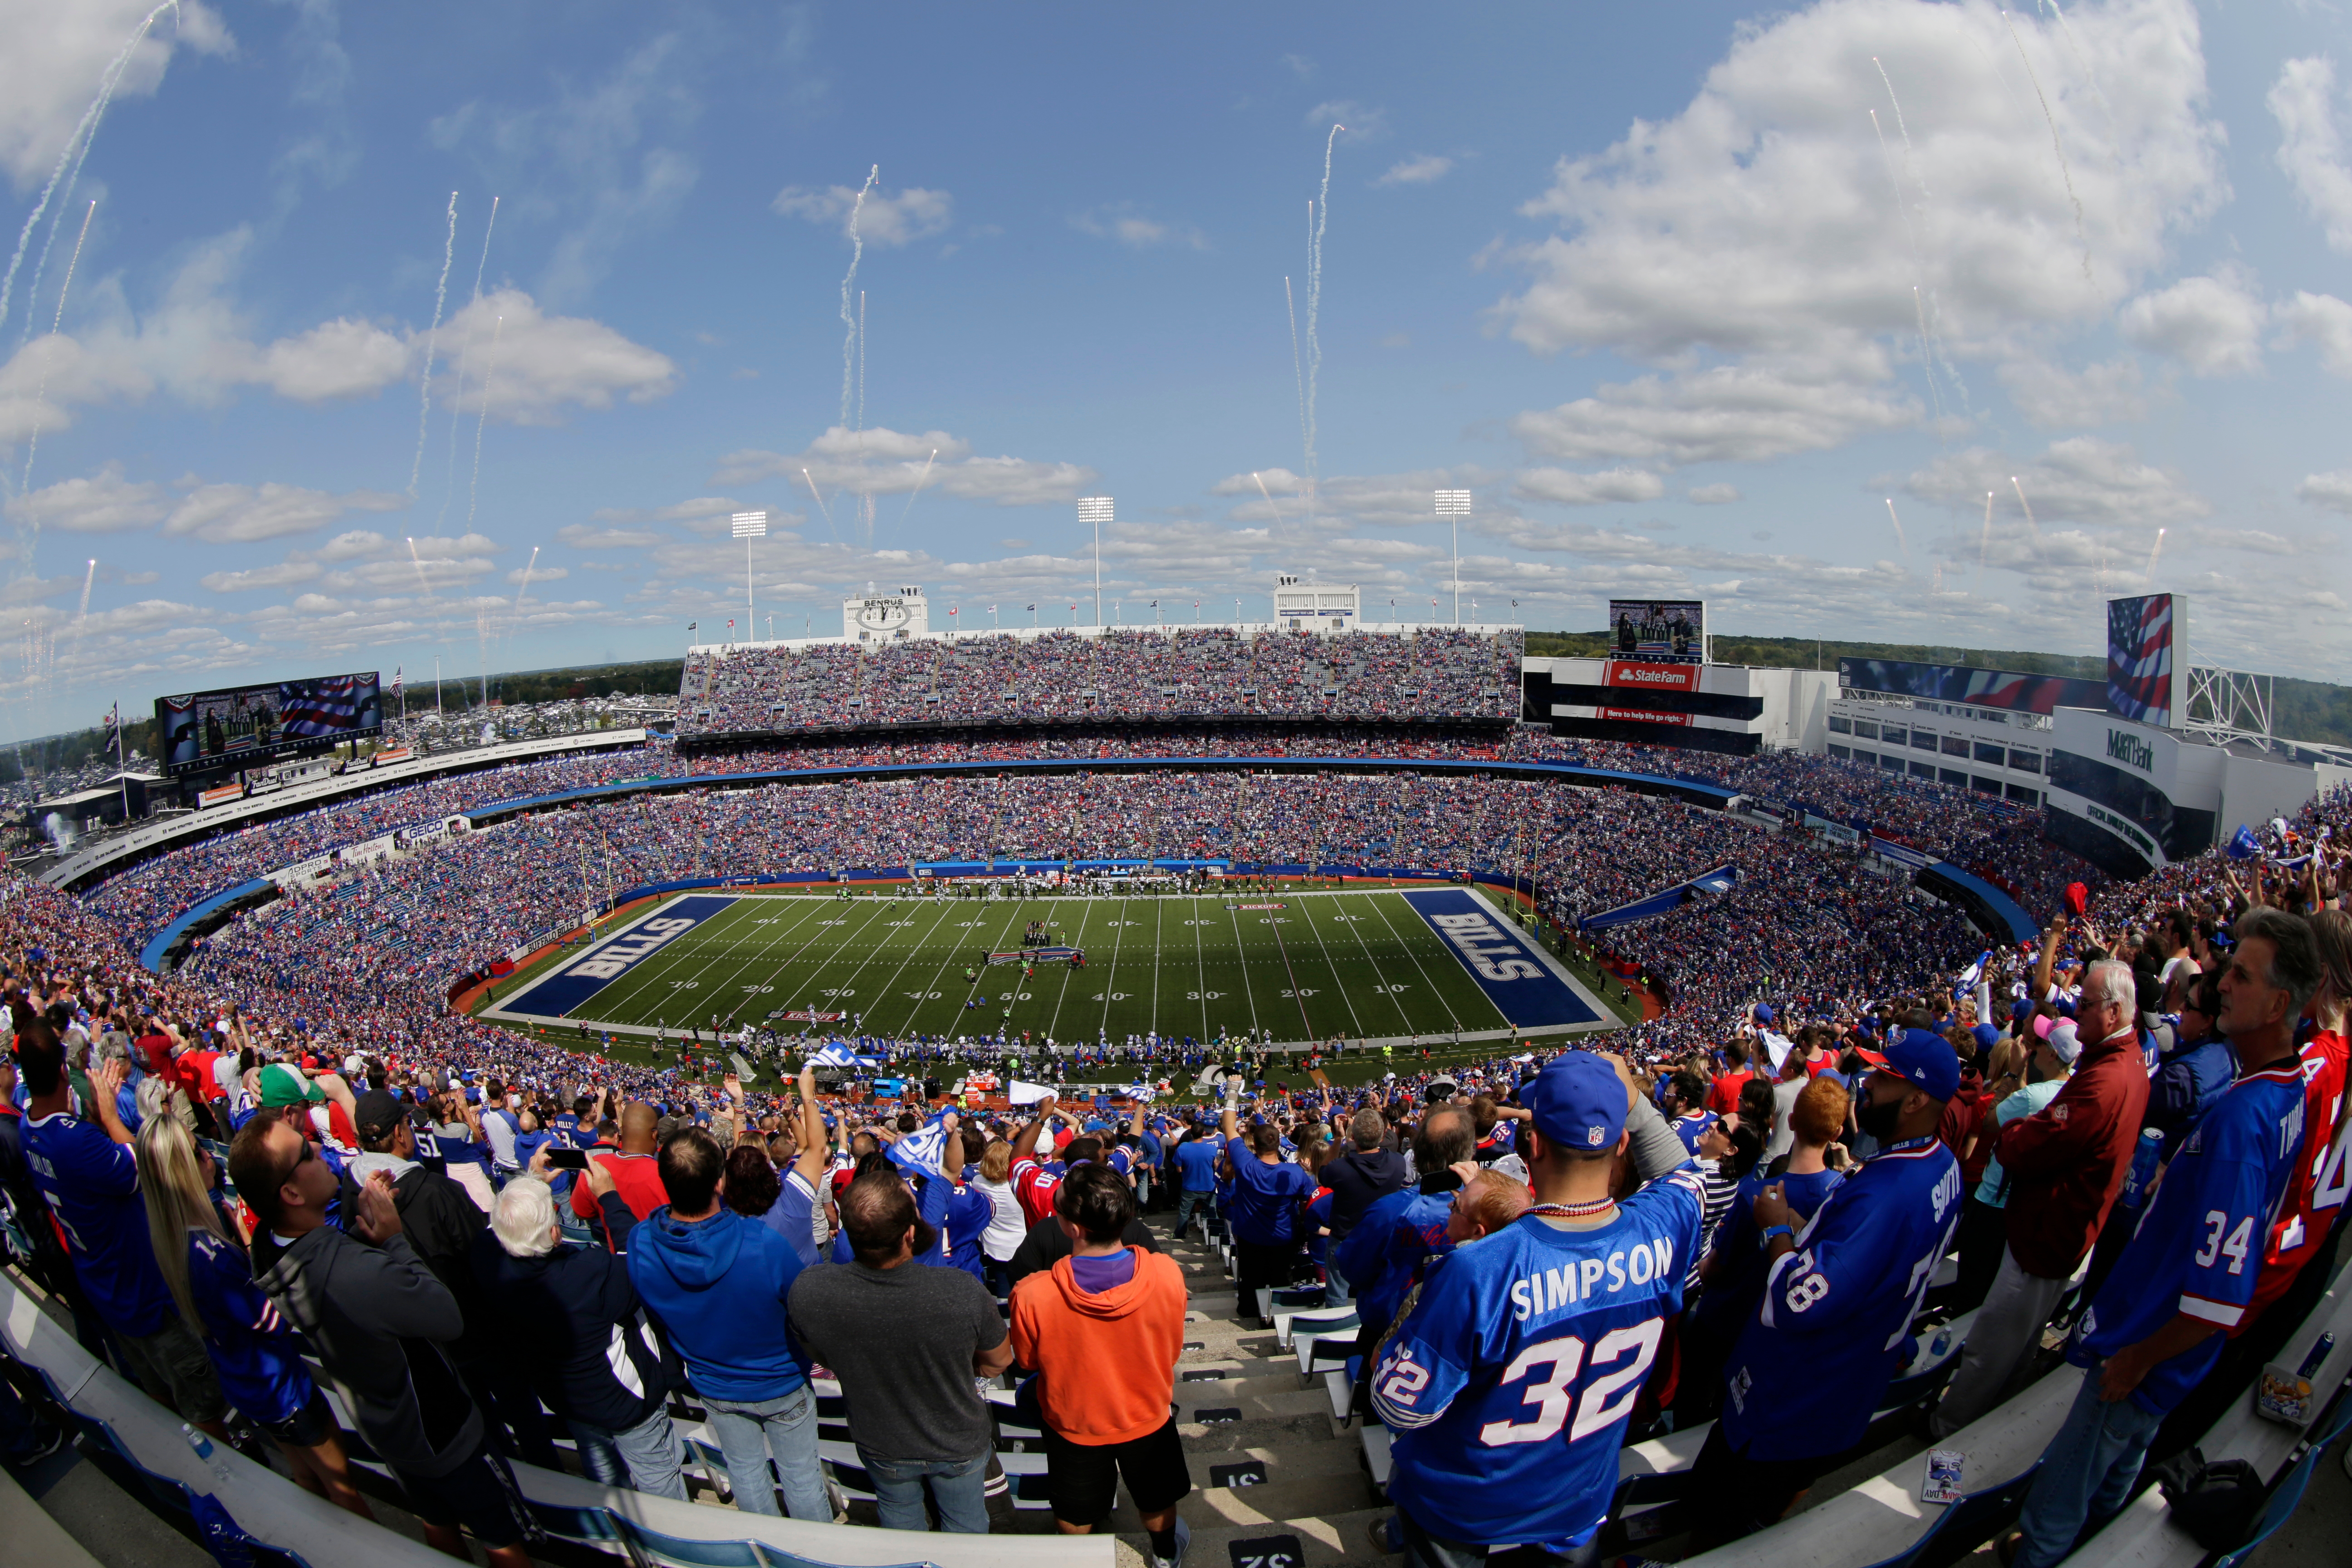 Buffalo Bills Still Planning For Fans At Games If Allowed Update Season Ticket Holders Syracuse Com